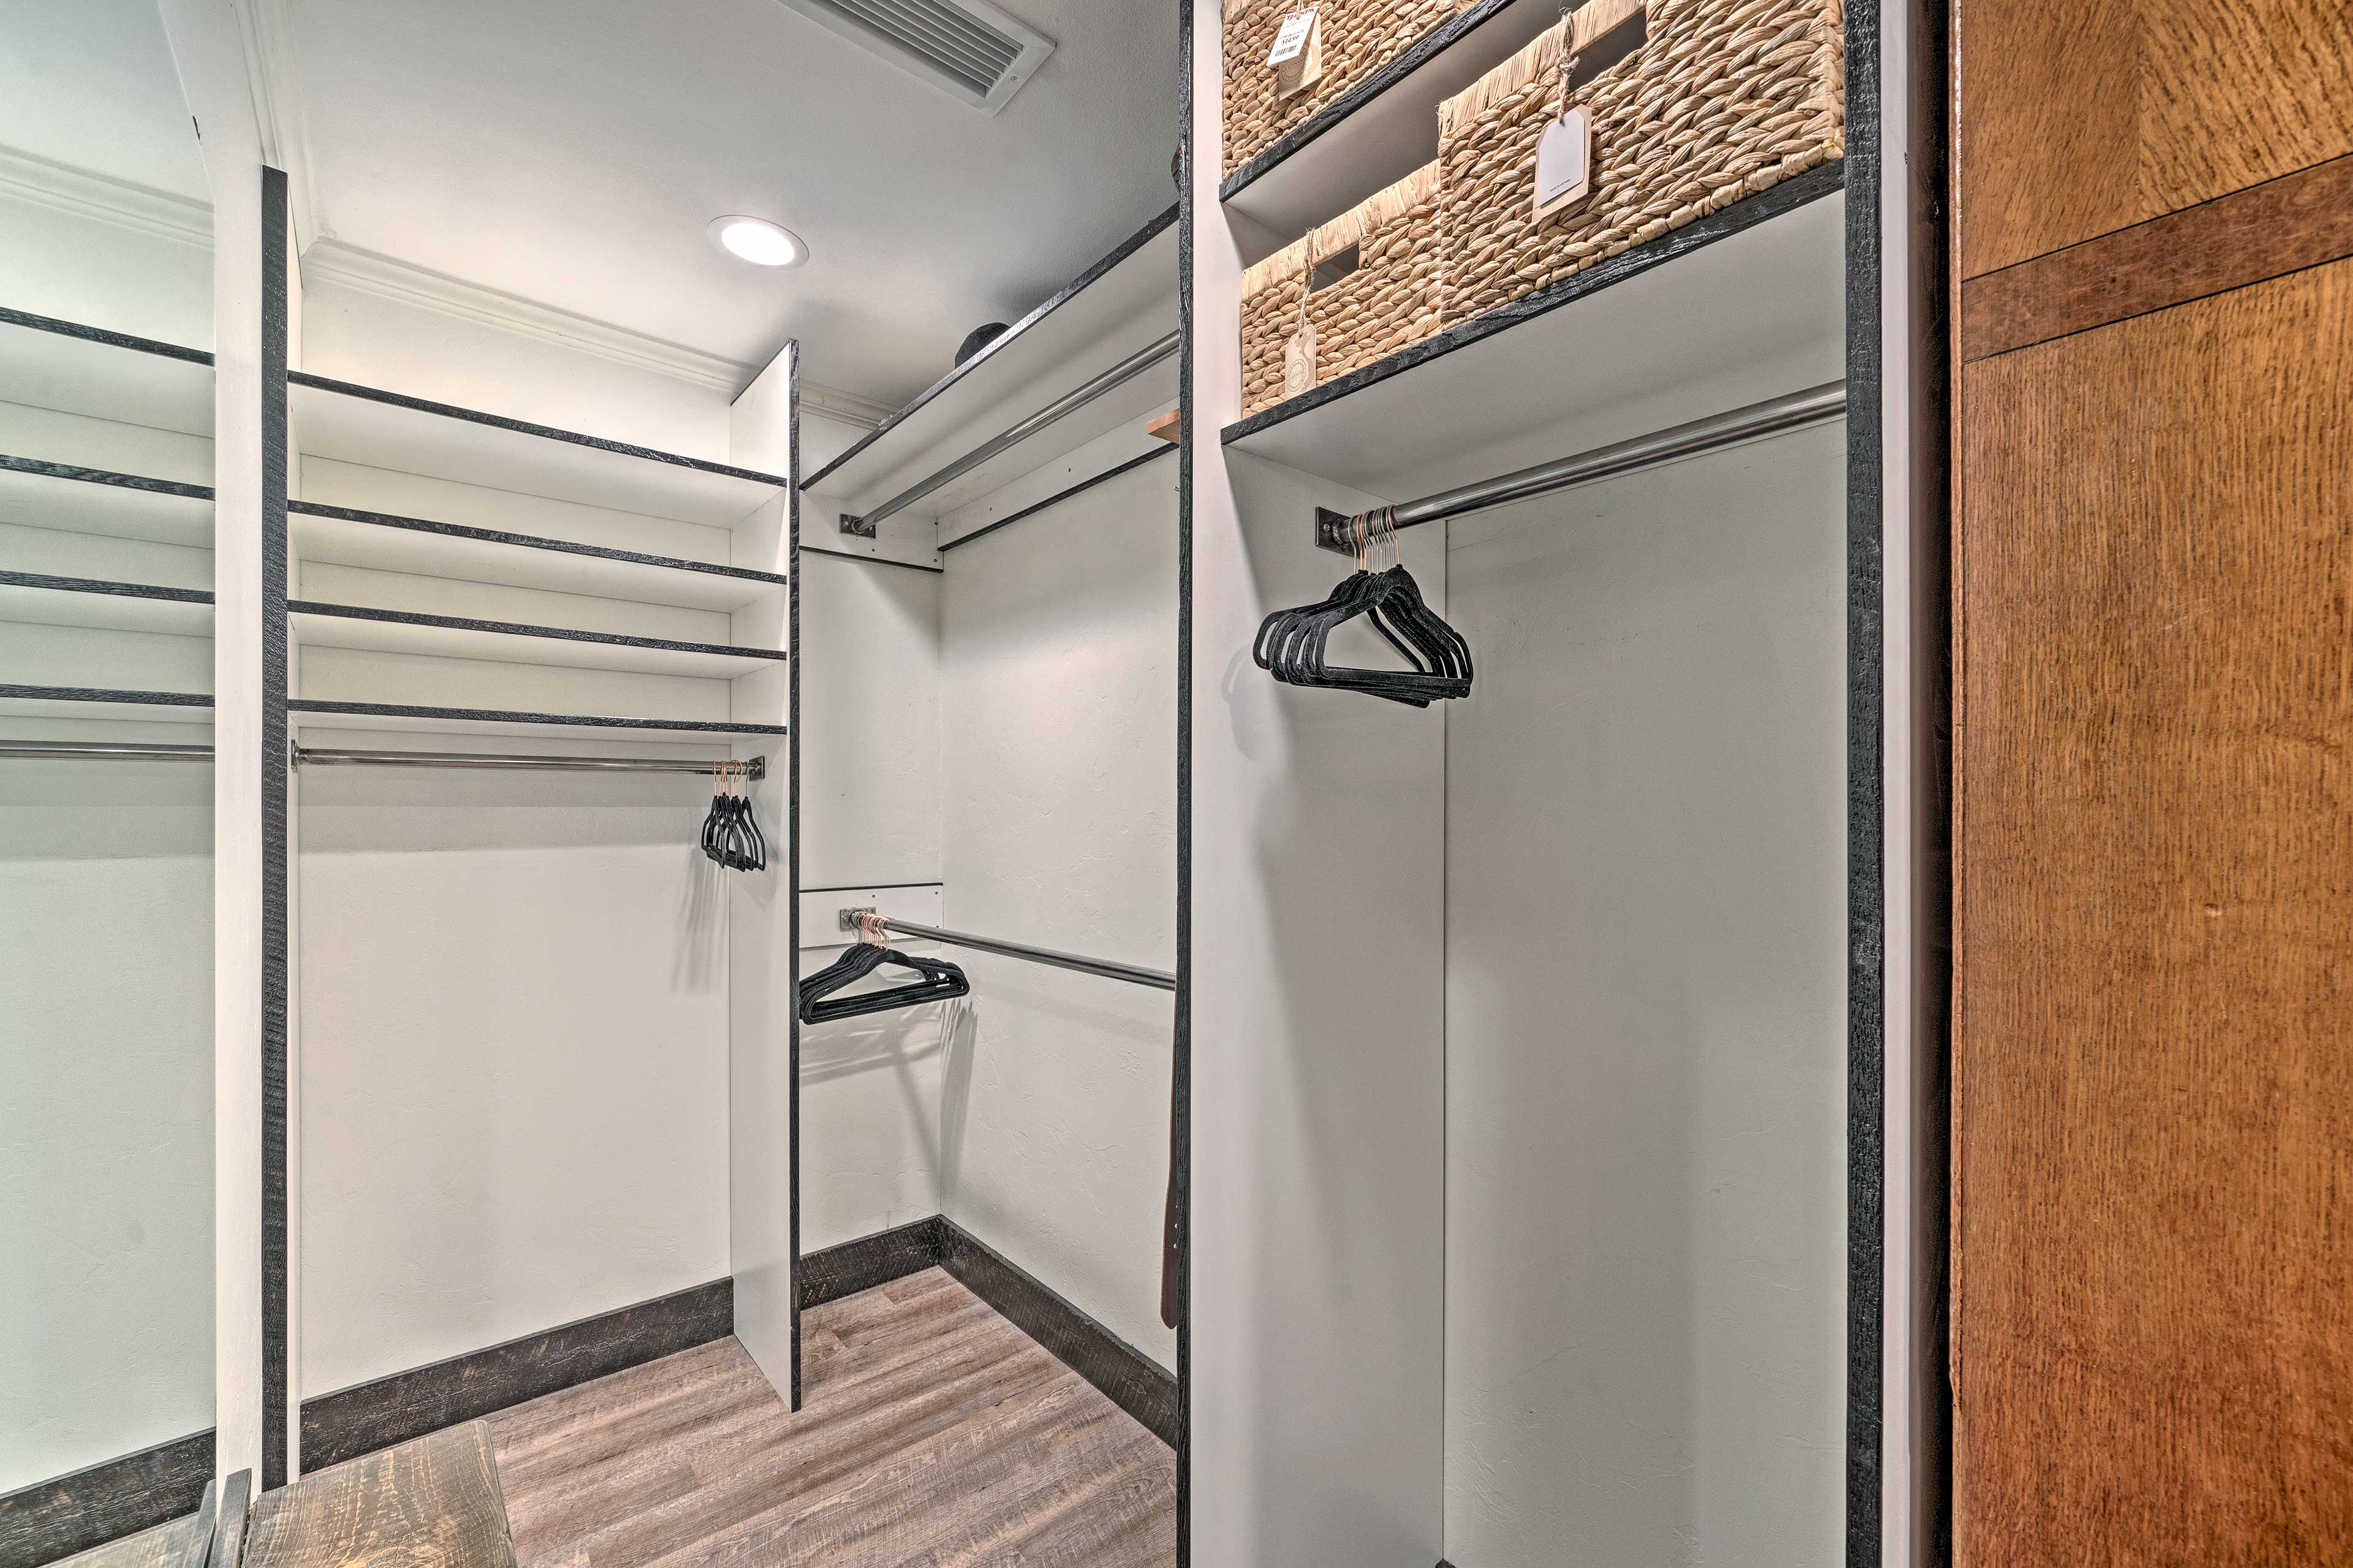 Use the walk-in closet to store your luggage during your stay.